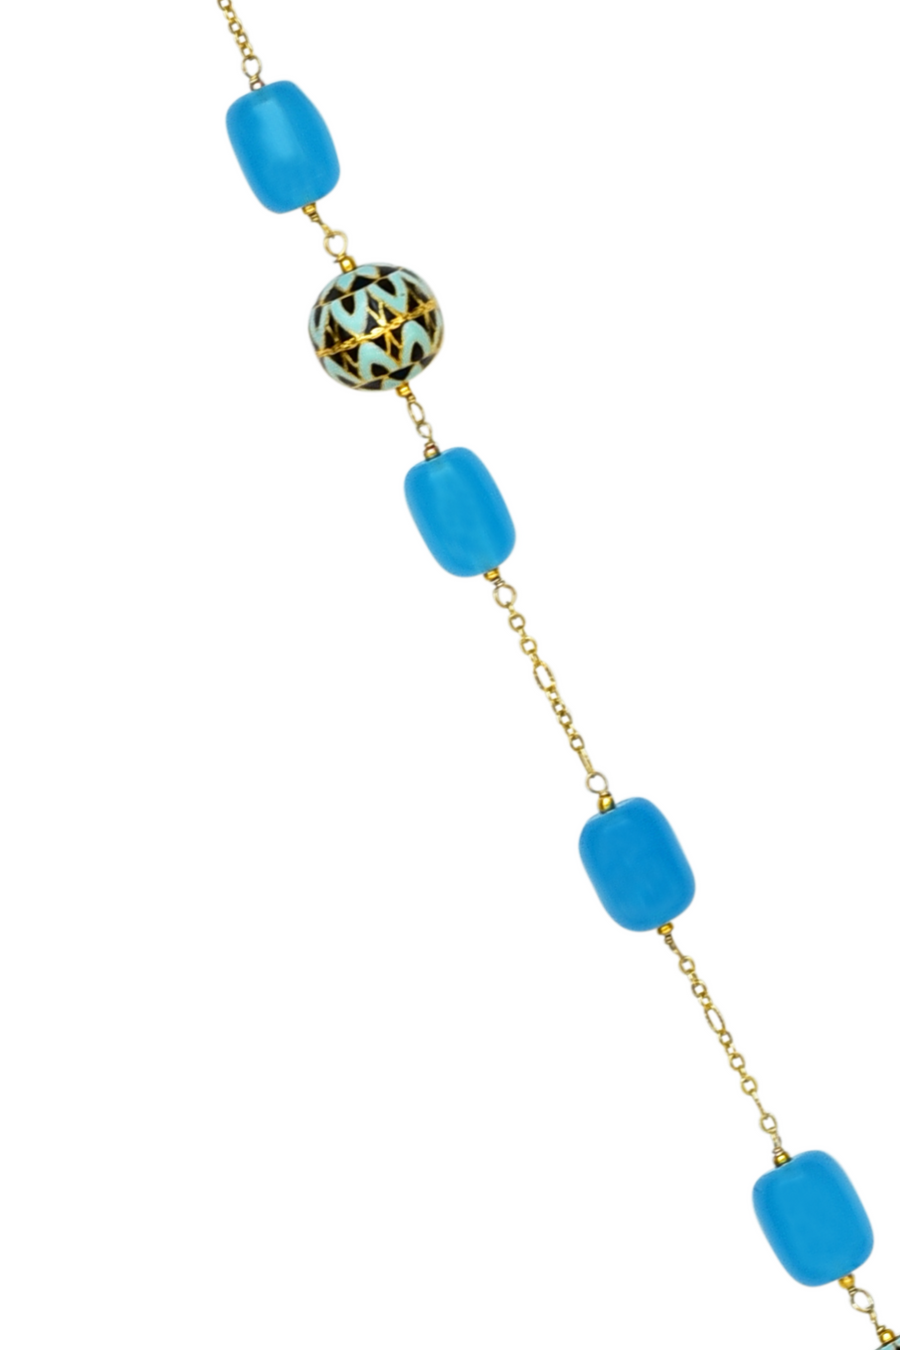 Sabah Long Necklace (Blue) - Painted Enamel Meena Necklace with Chalcedony